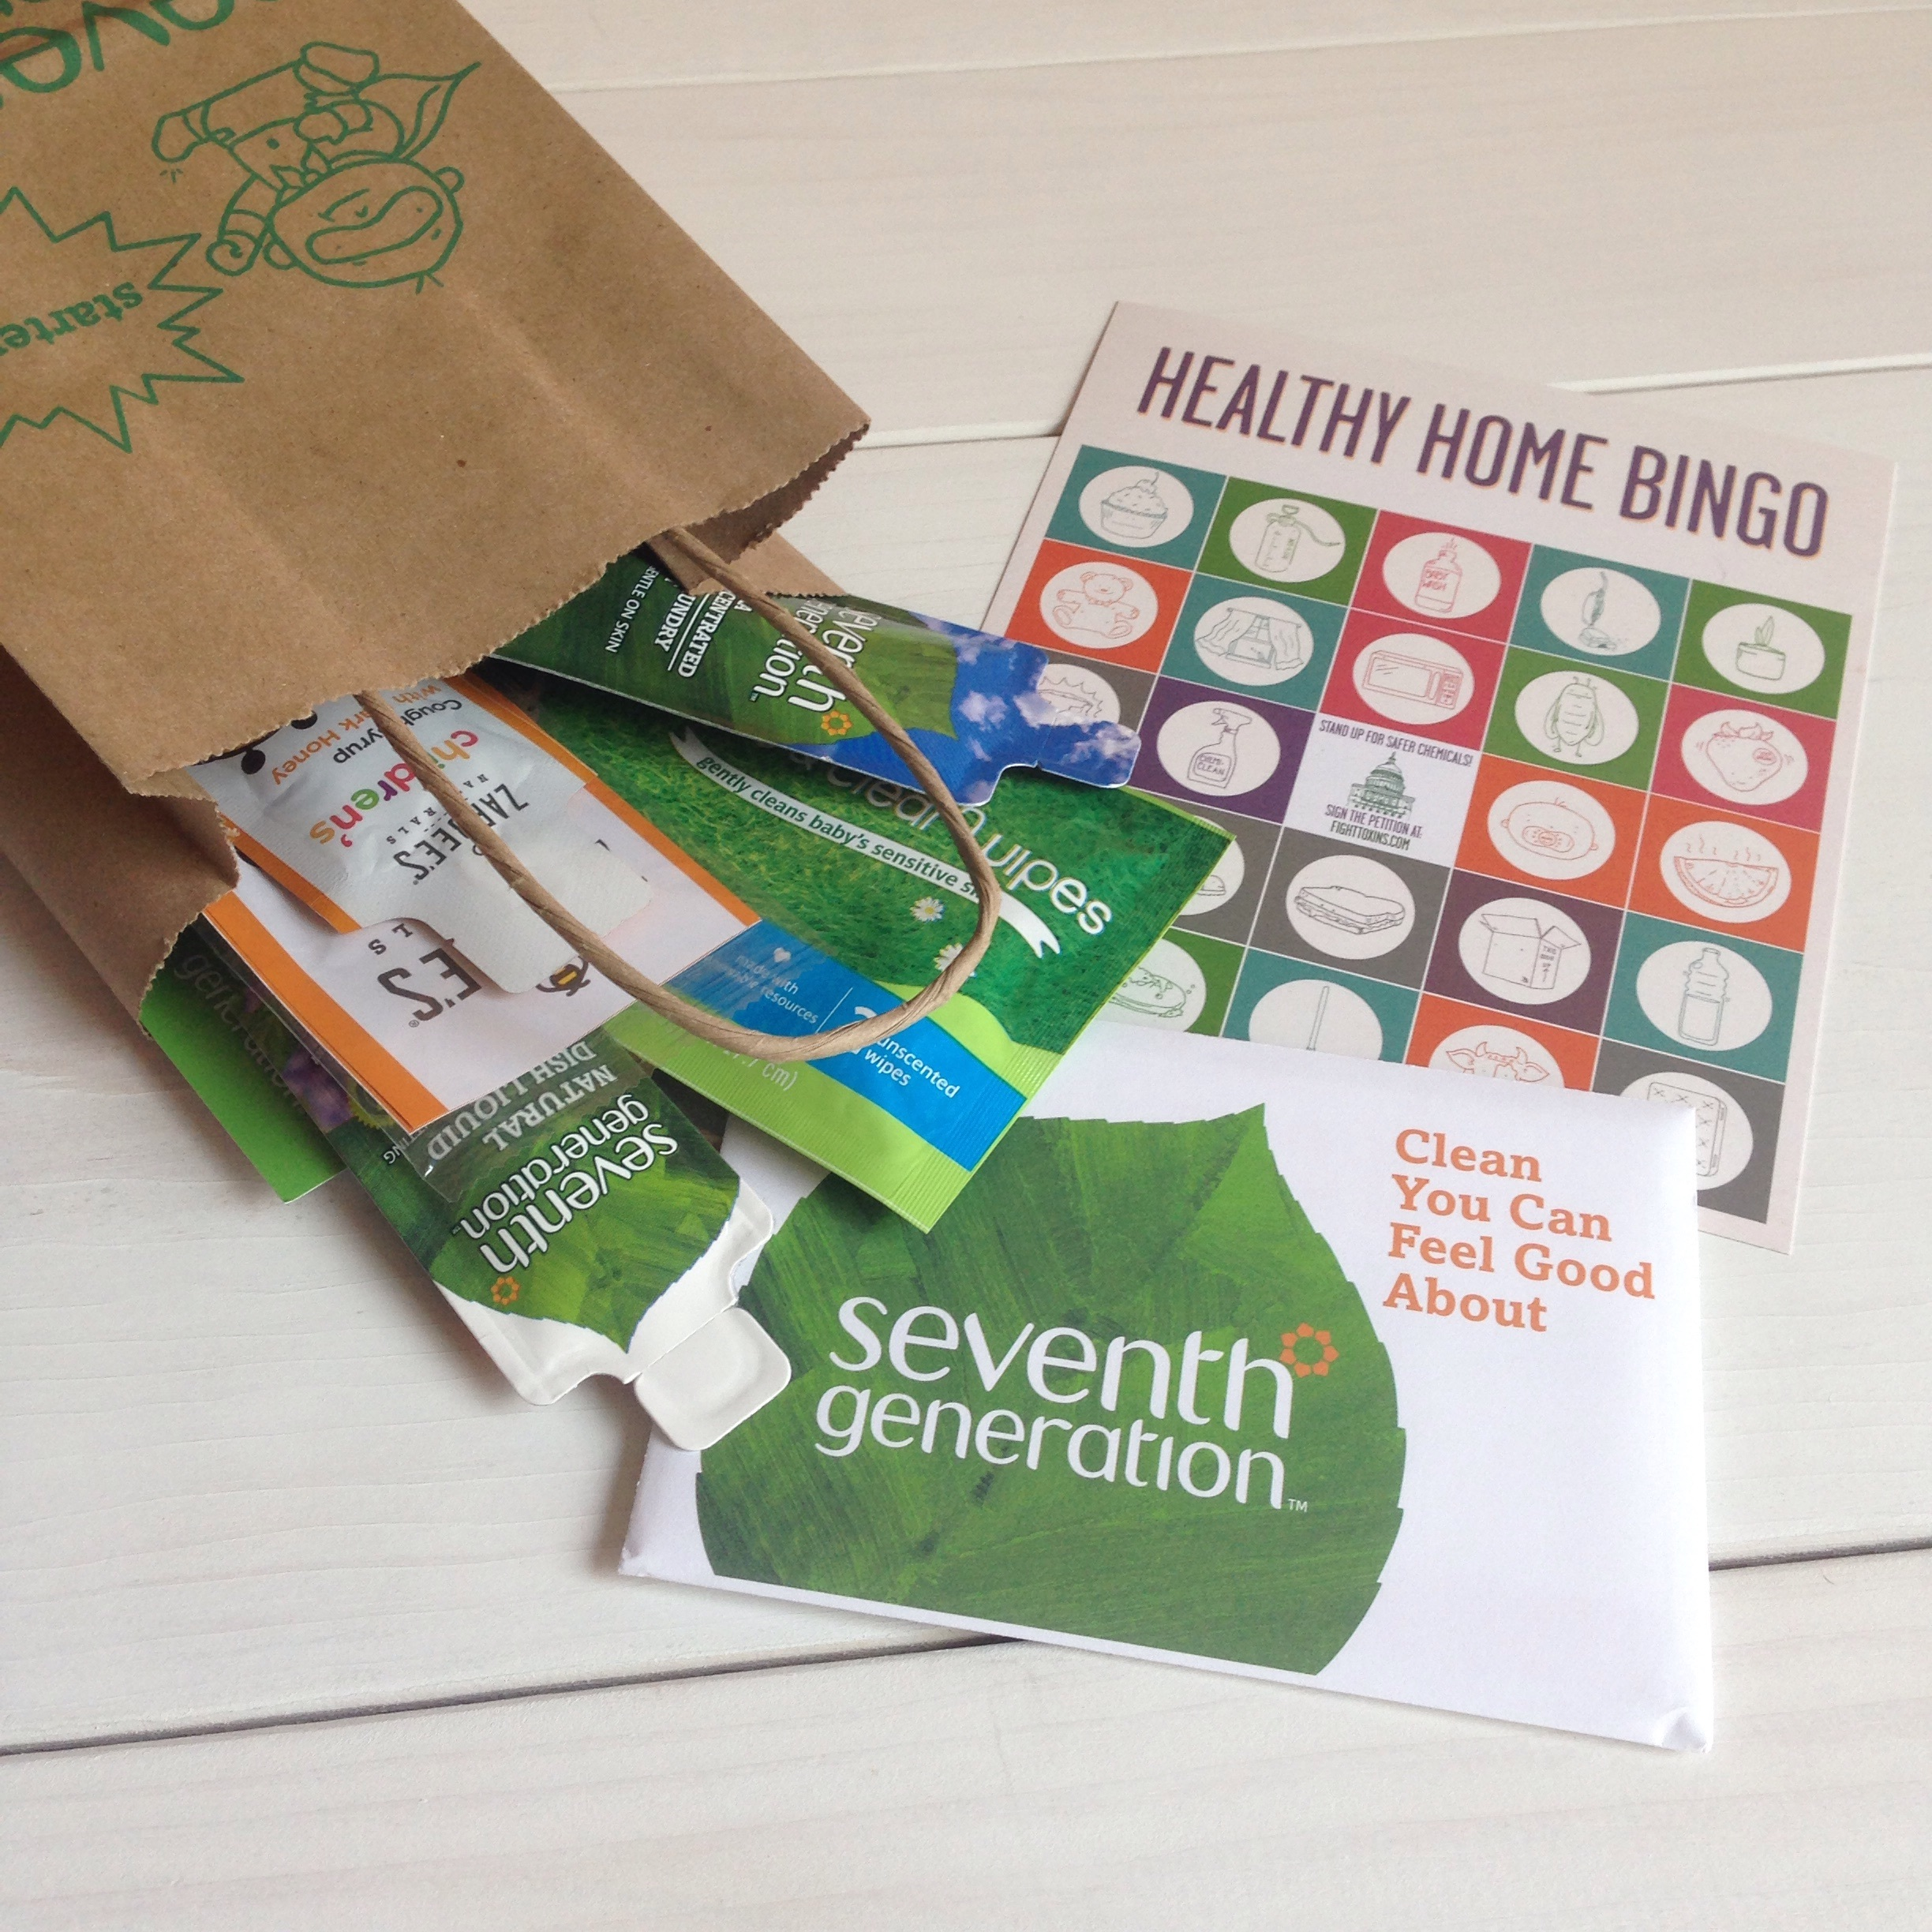 Product samples and coupons from:    Seventh Generation  ,   Zarbee's Naturals  , and   Bobble  .